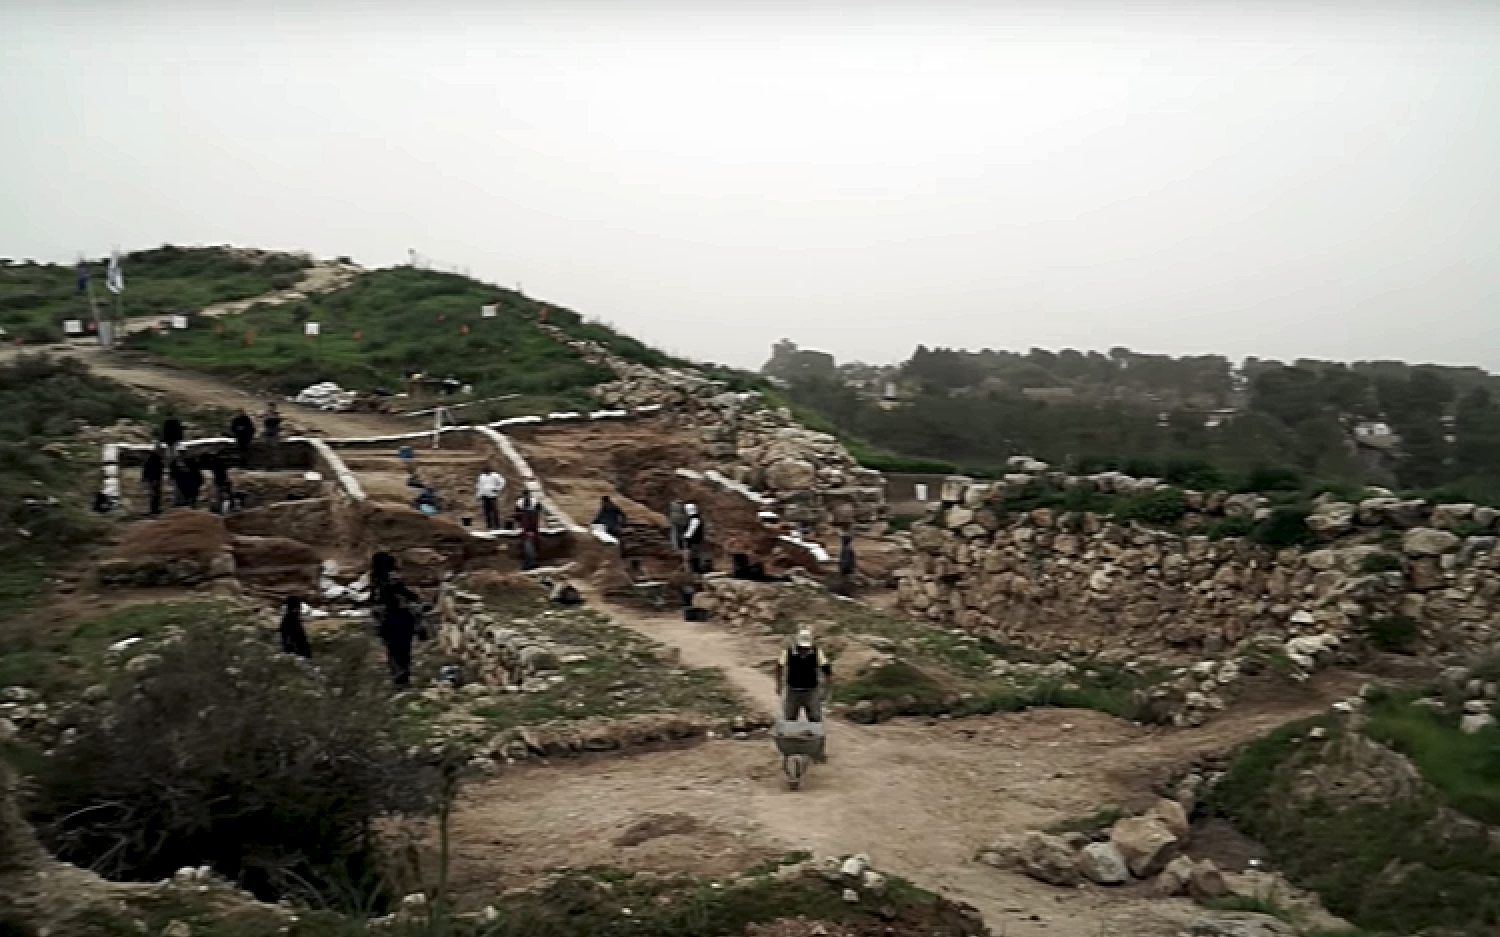 Archeologists uncover city gate destroyed by Hezekiah